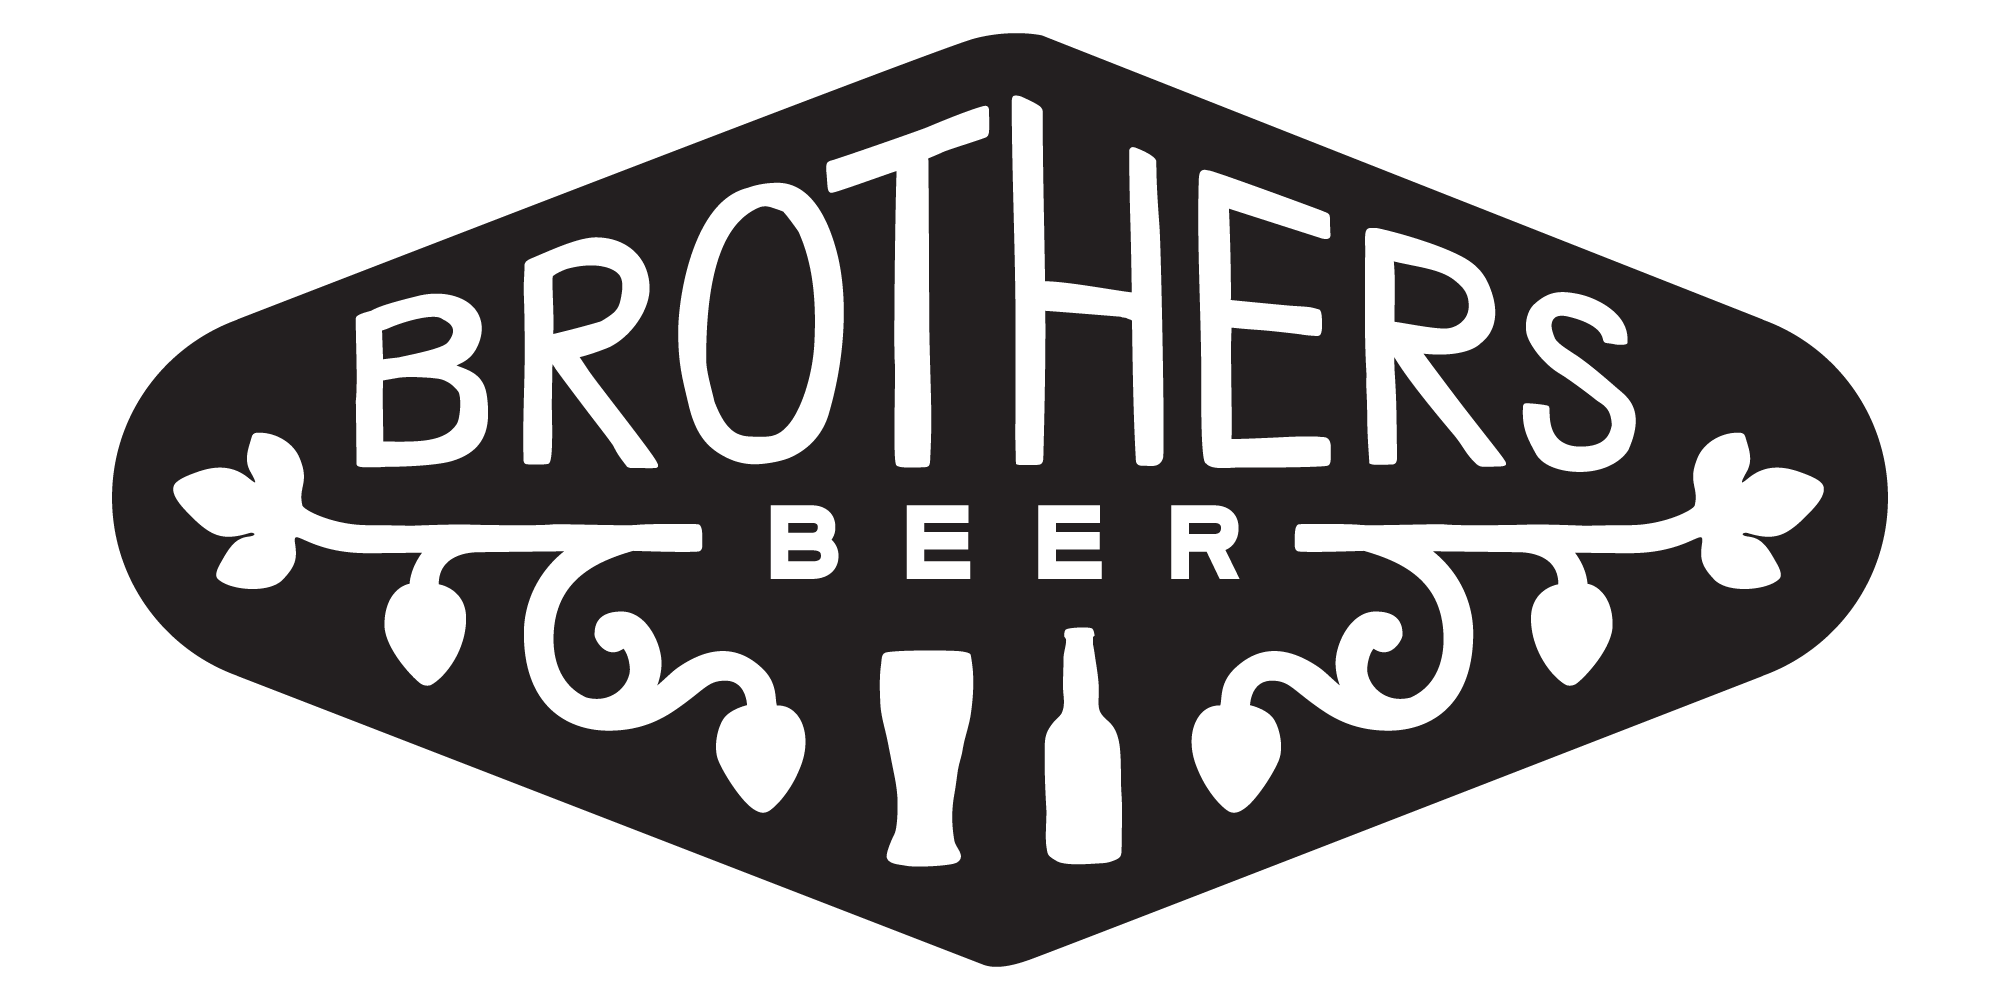 brothers-beer logo